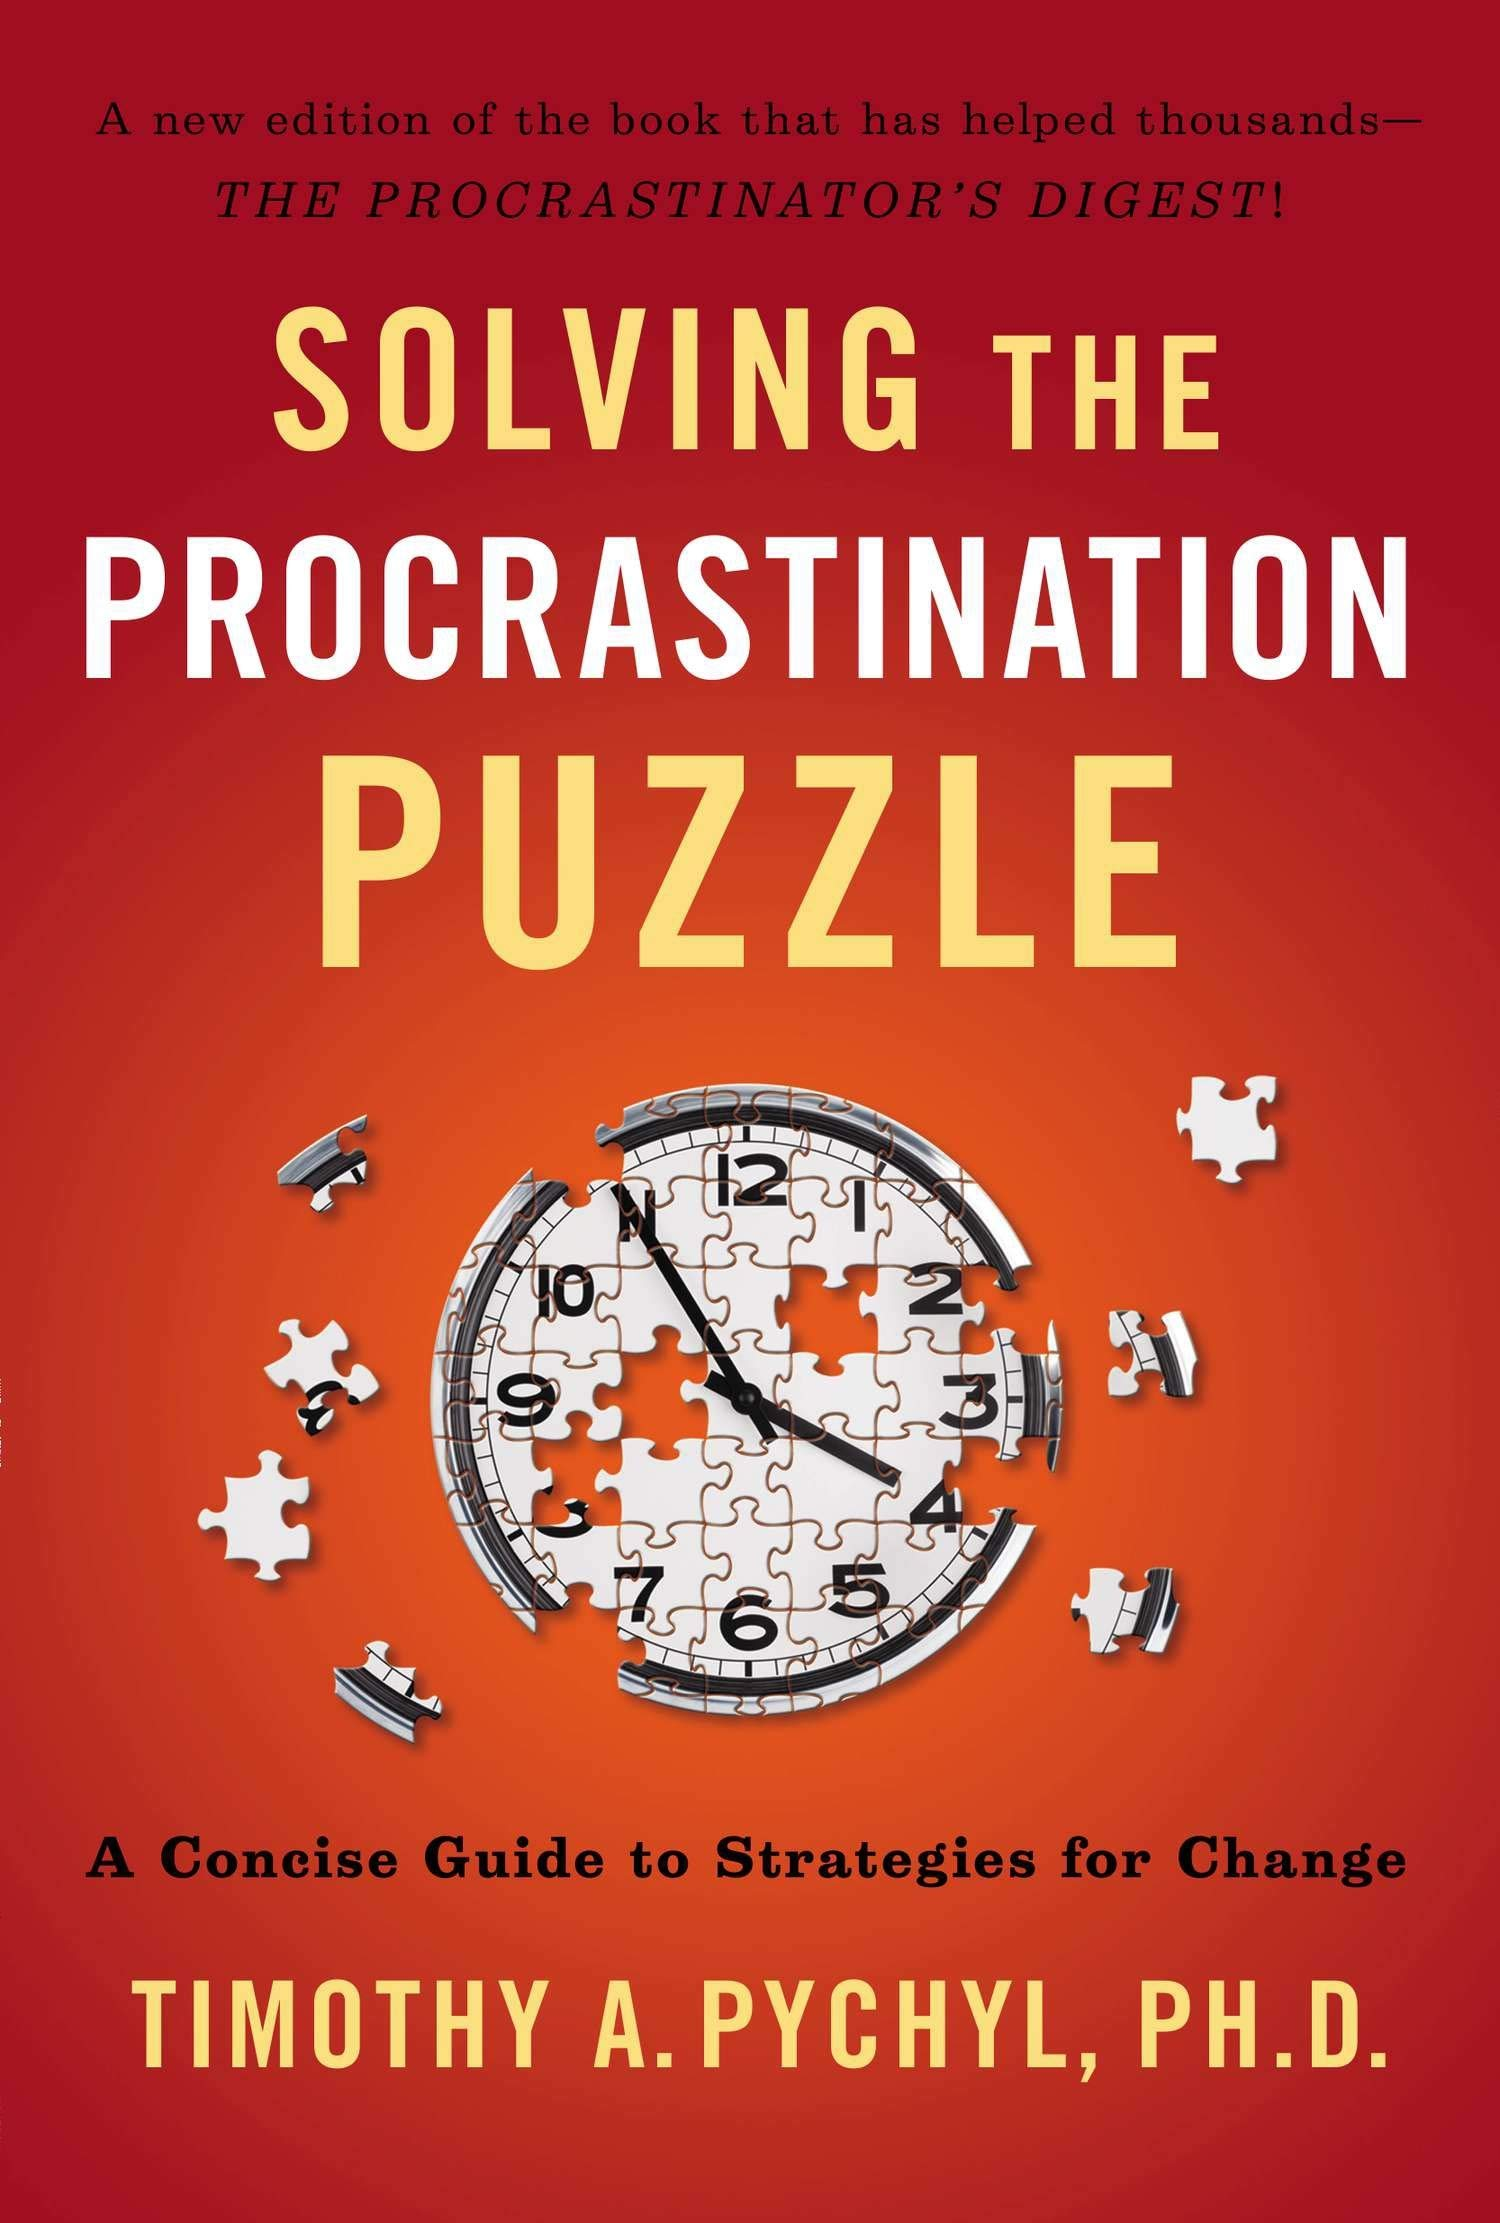 Image OfSolving The Procrastination Puzzle: A Concise Guide To Strategies For Change